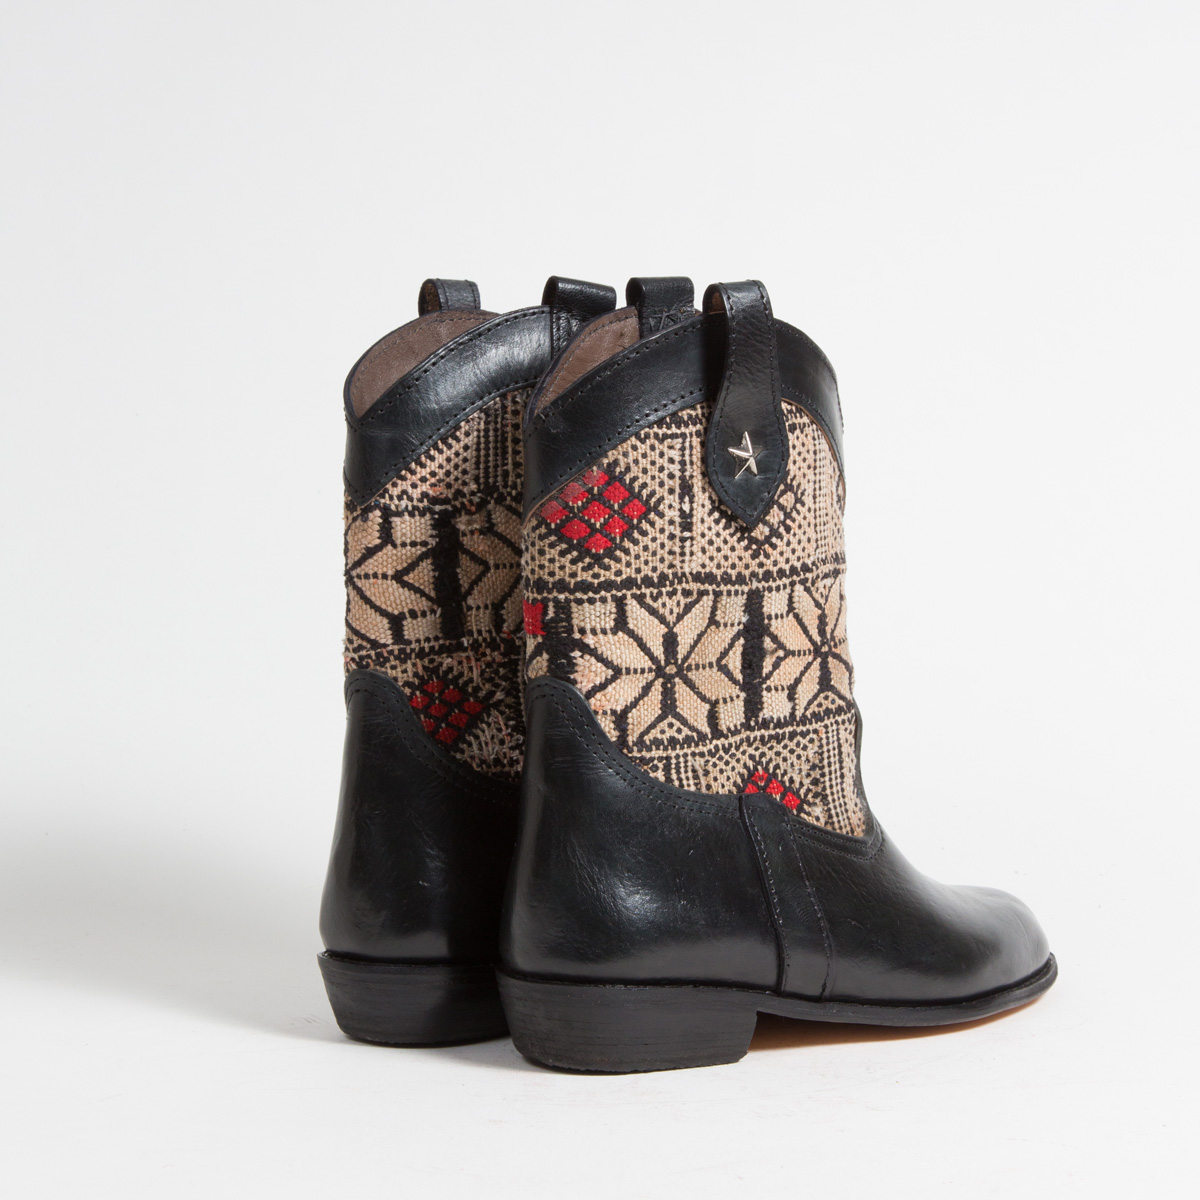 Bottines Kilim cuir mababouche artisanales (Réf. MN9-39)